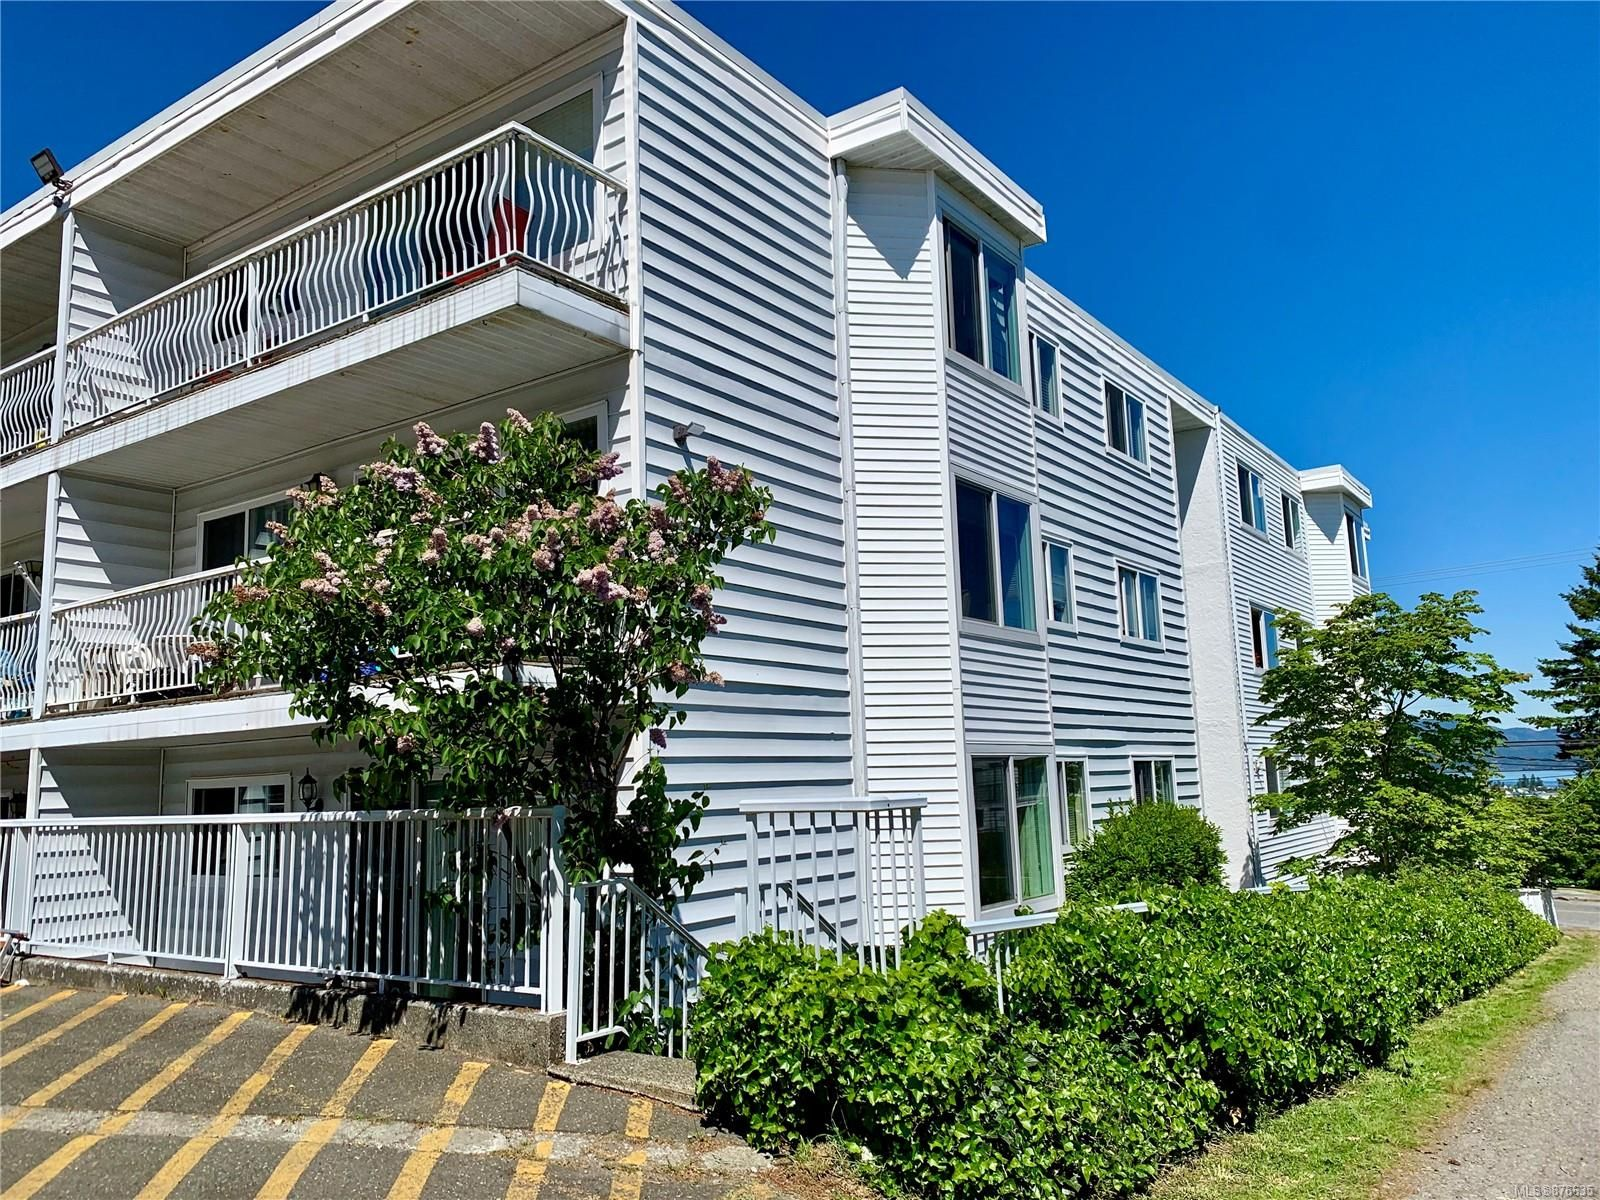 Main Photo: 103 501 9th Ave in : CR Campbell River Central Condo for sale (Campbell River)  : MLS®# 876635